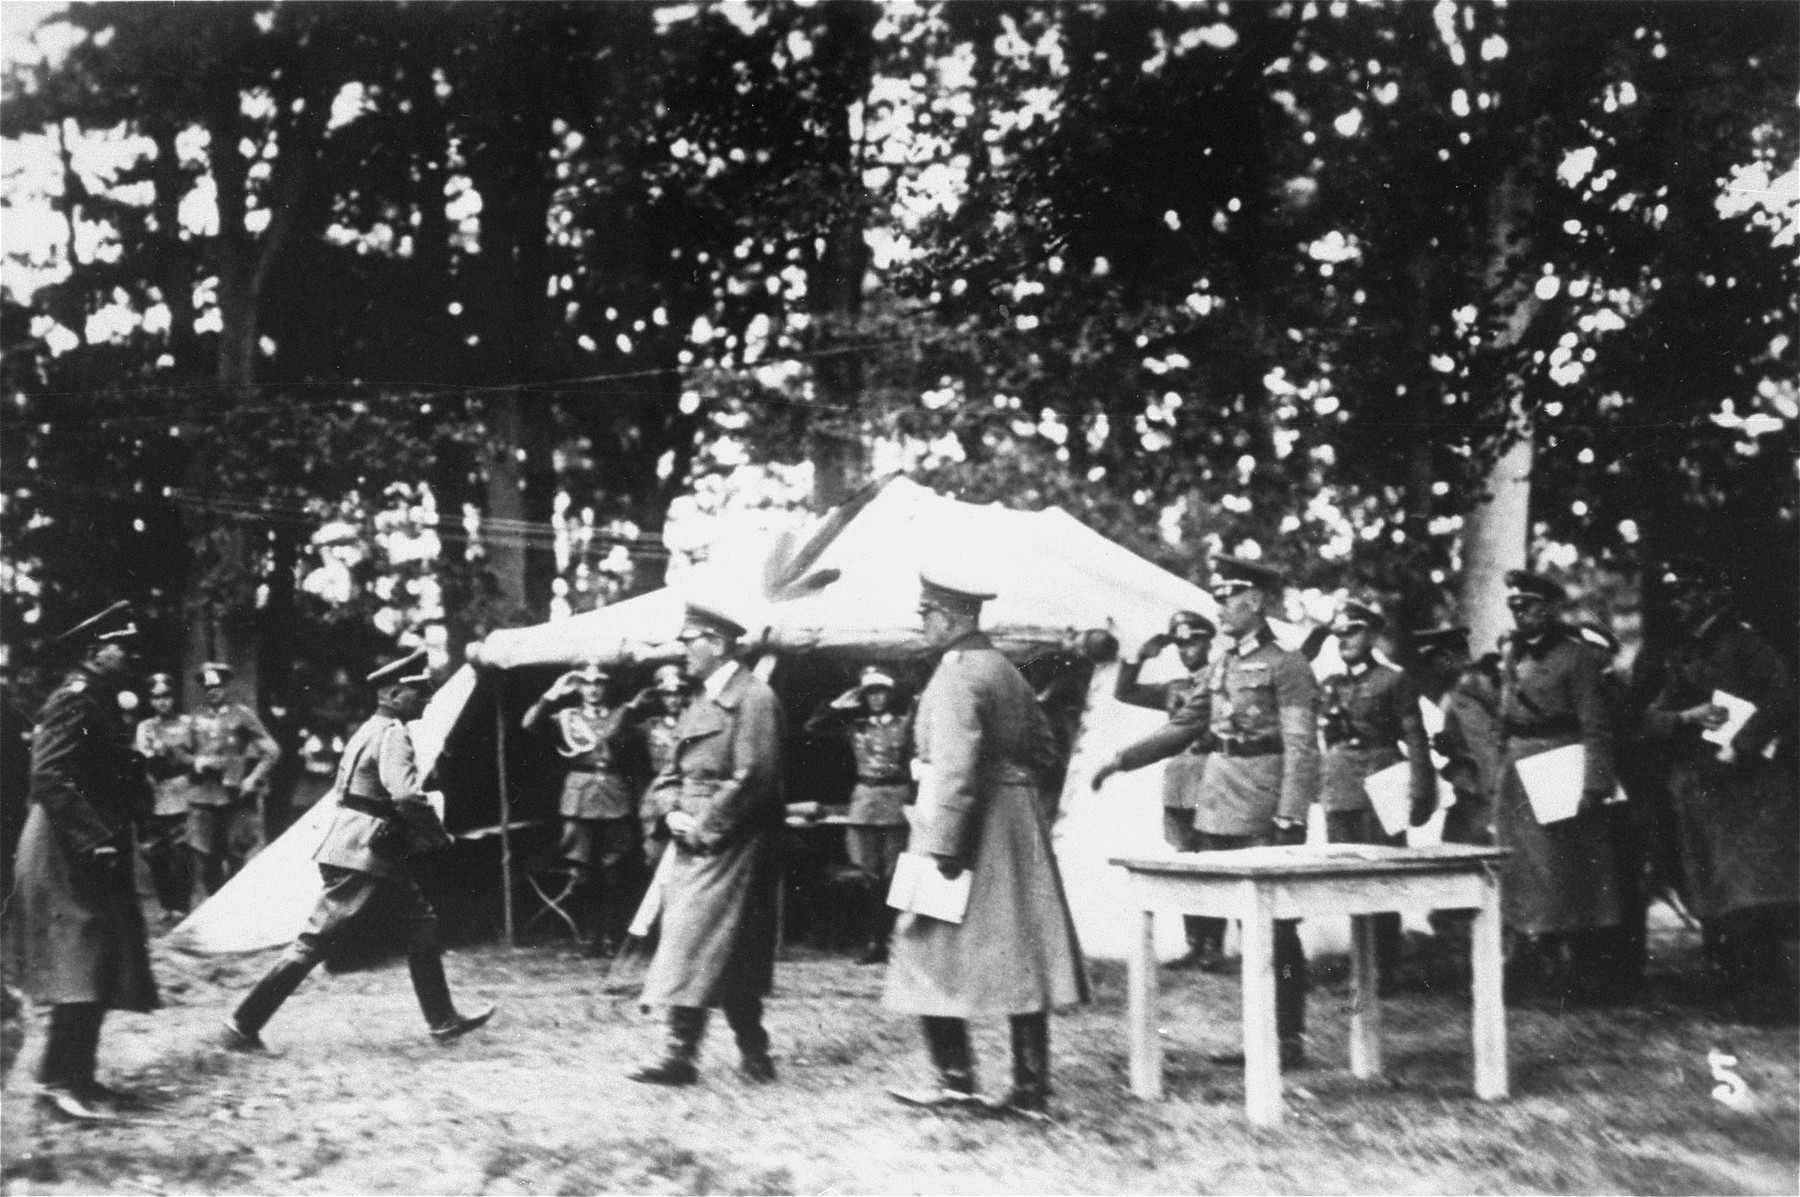 Adolf Hitler visits the unit of the 12th Panzer Division, which Solly Perel has joined, during the first summer of the war in the Soviet Union.